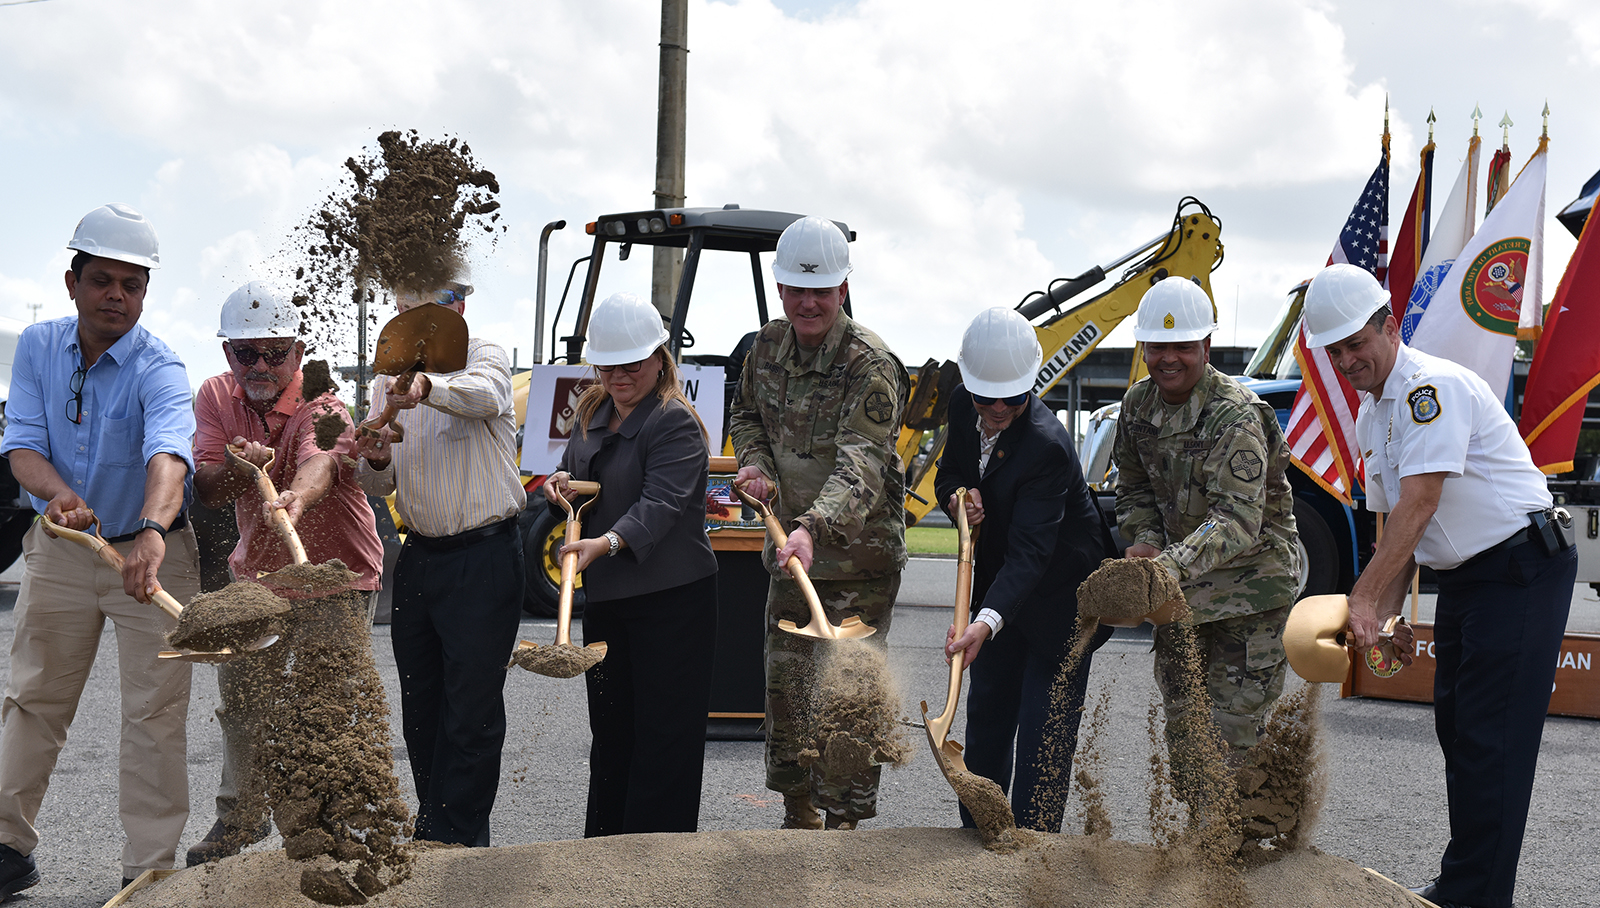 GROUNDBREAKING CEREMONY AT THE BORINQUENEERS' GATE